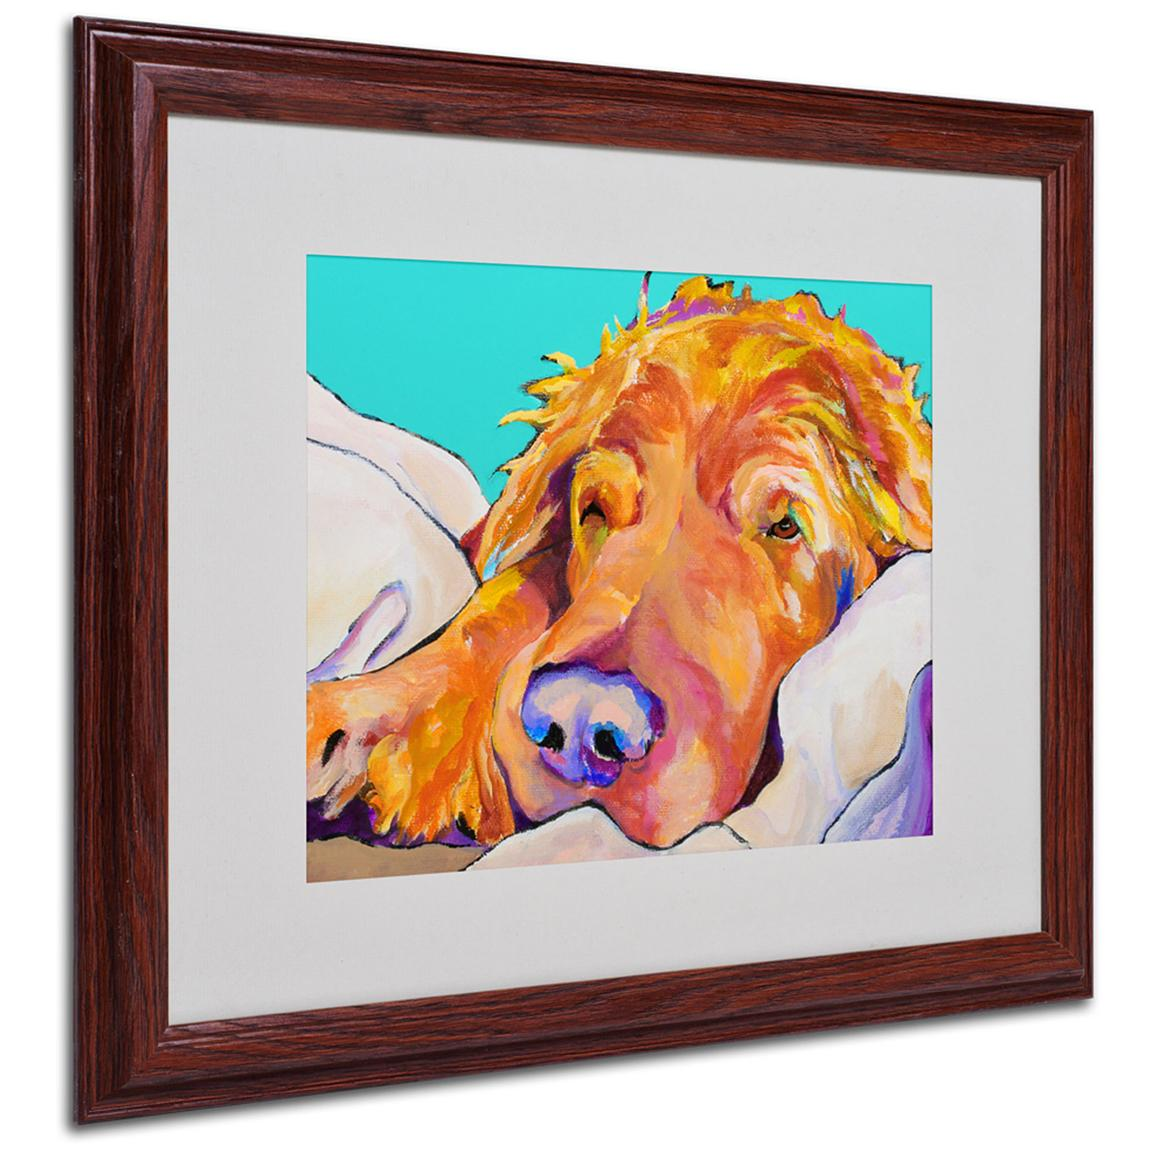 "Pat Saunders-White ""Snoozer King"" Framed Matted Art, Walnut"